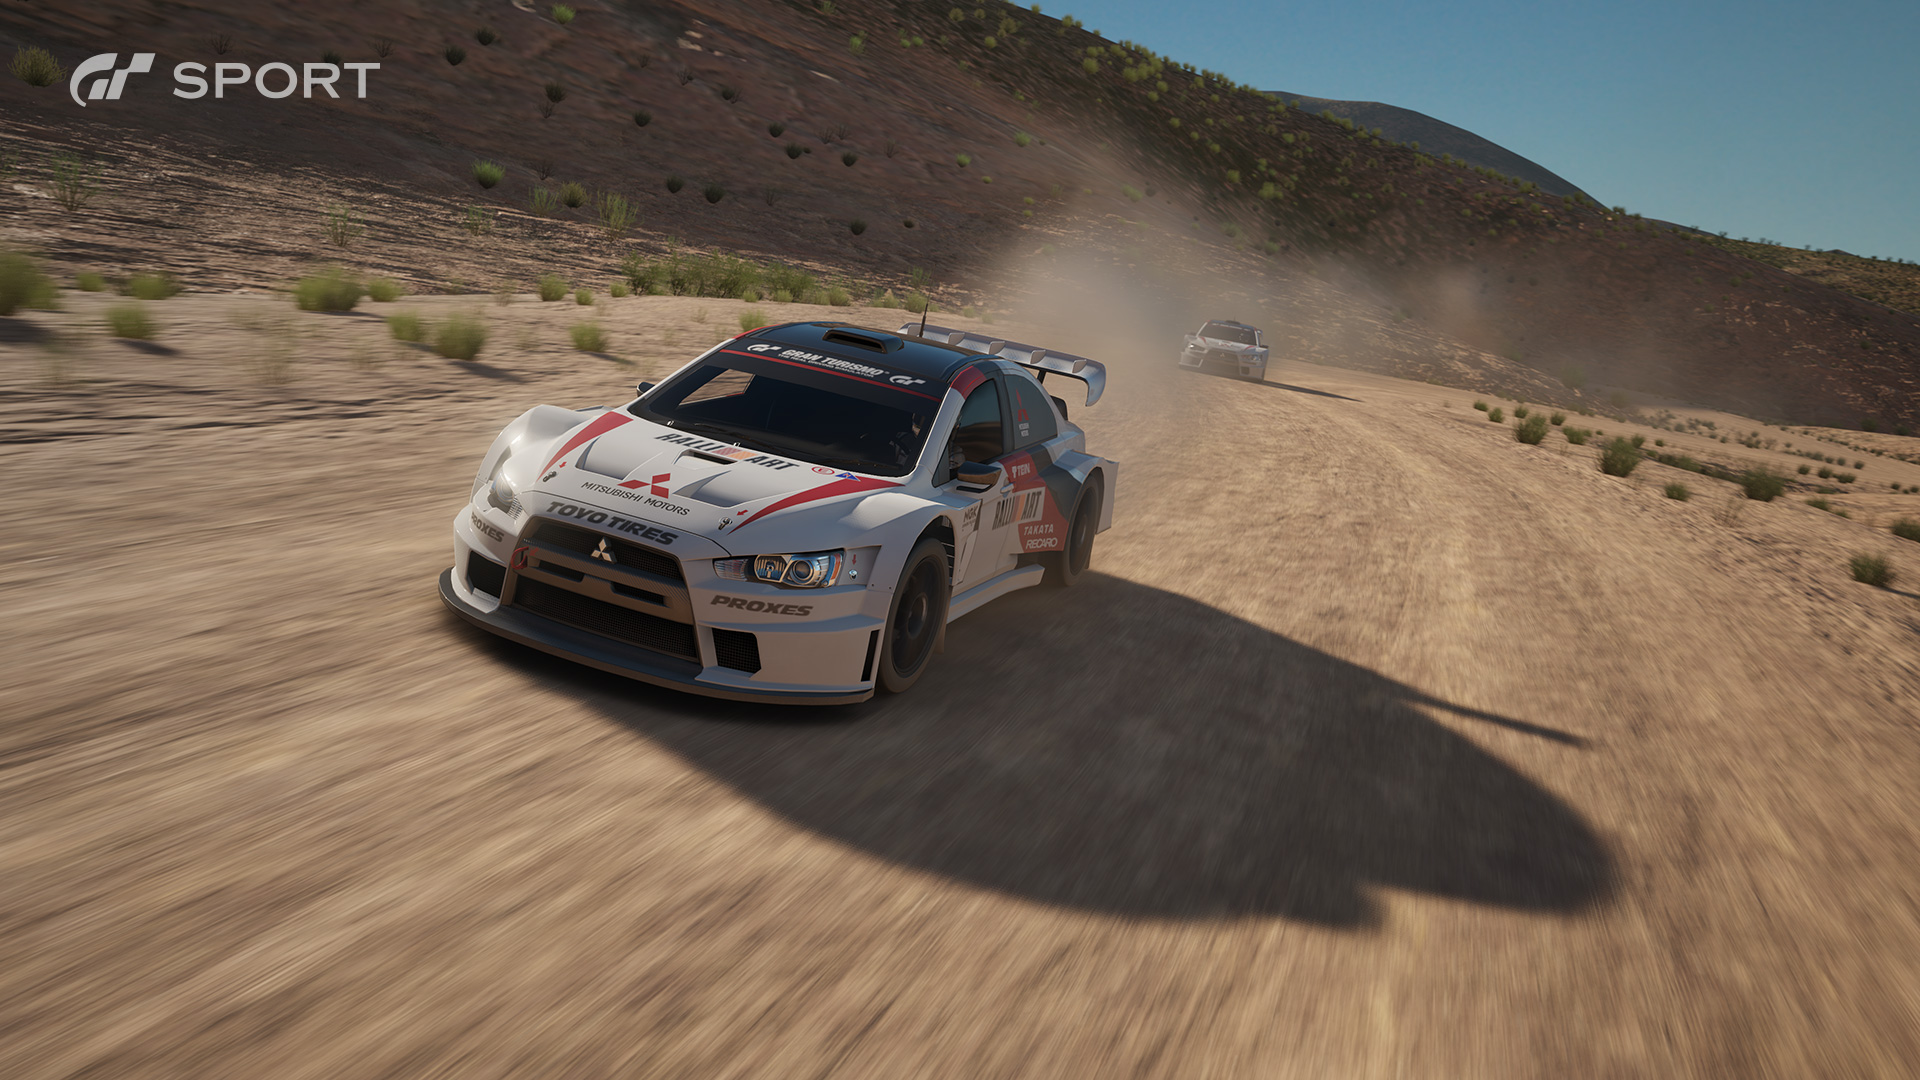 GTSport_Race_Dirt_02_1463670247